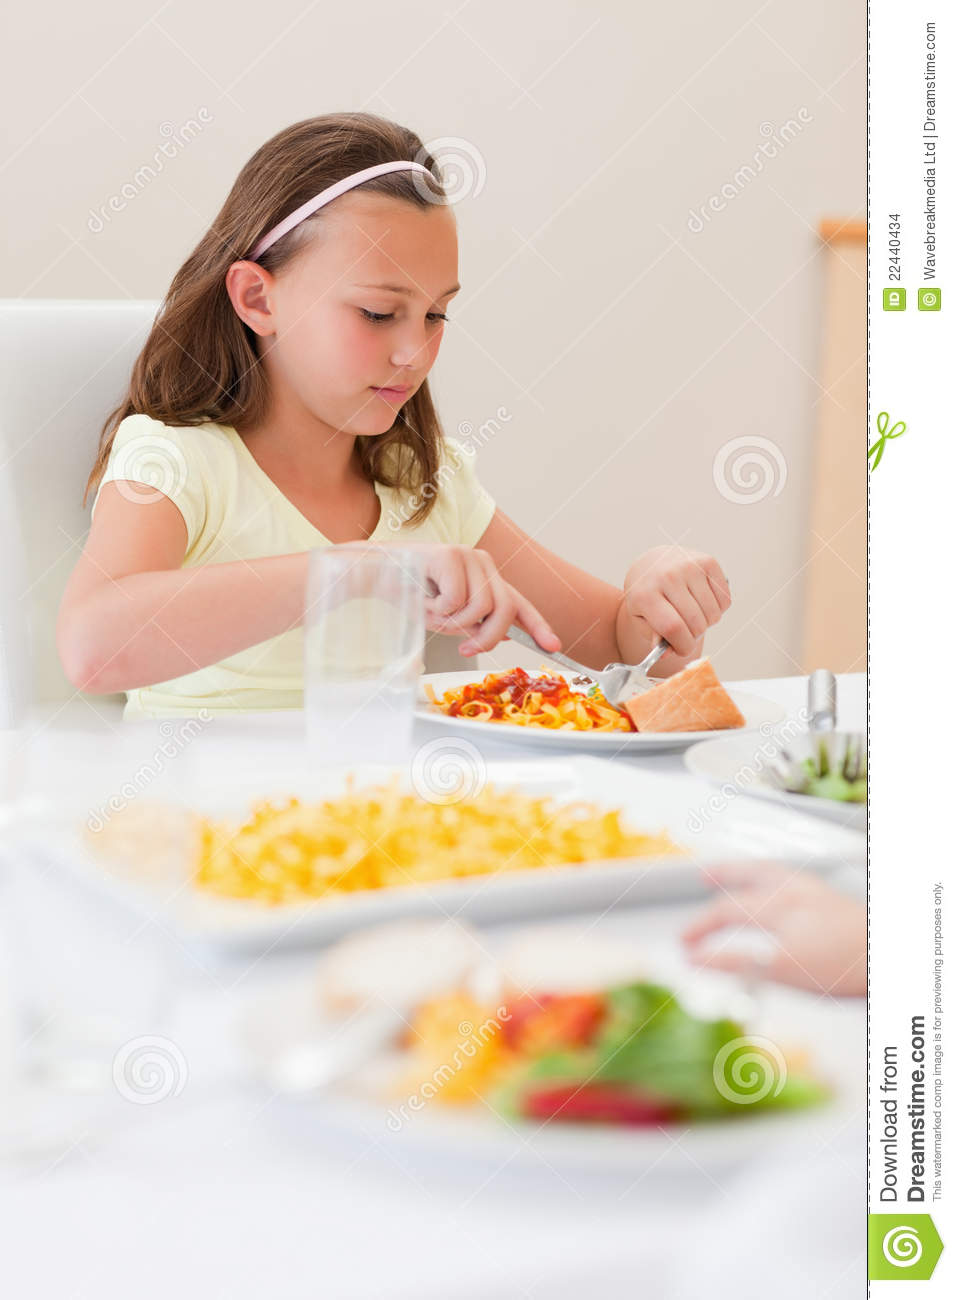 Girl eating at dinner table stock photo image 22440434 for Eating table